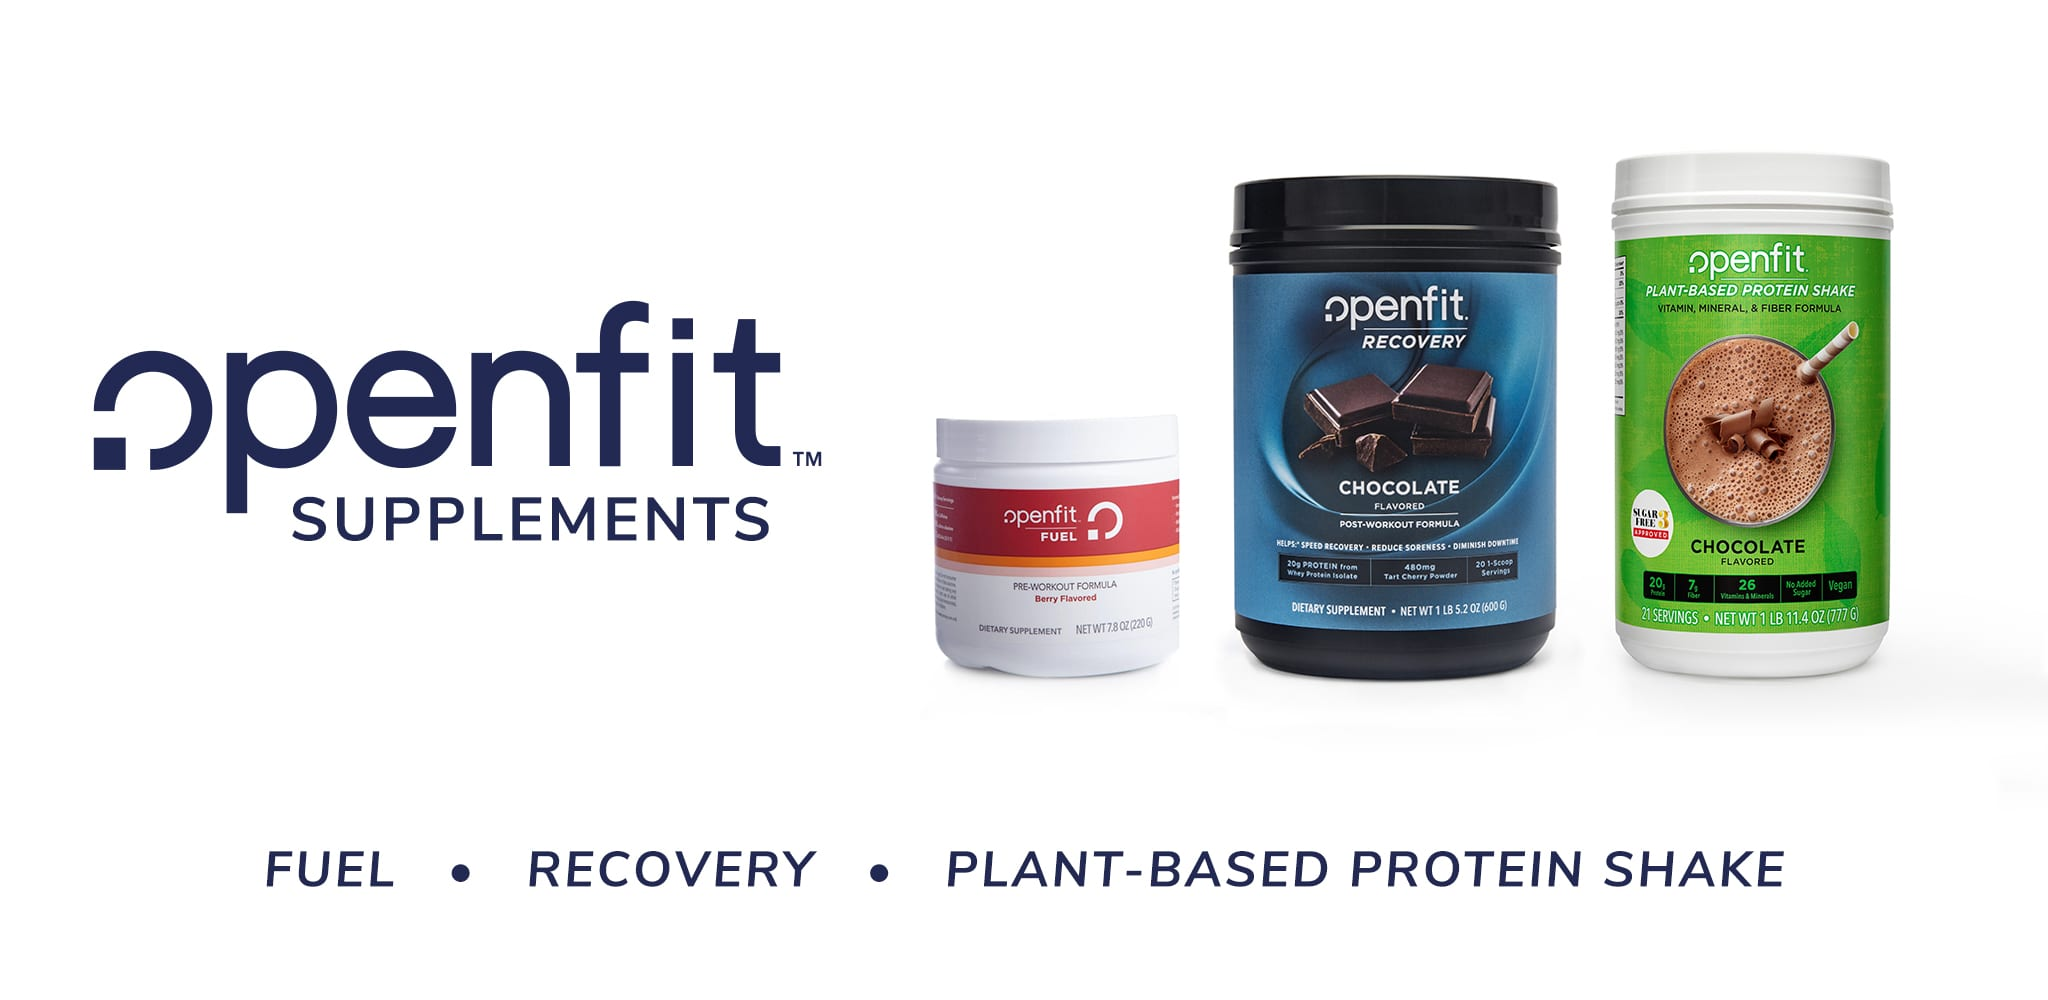 Openfit Supplements